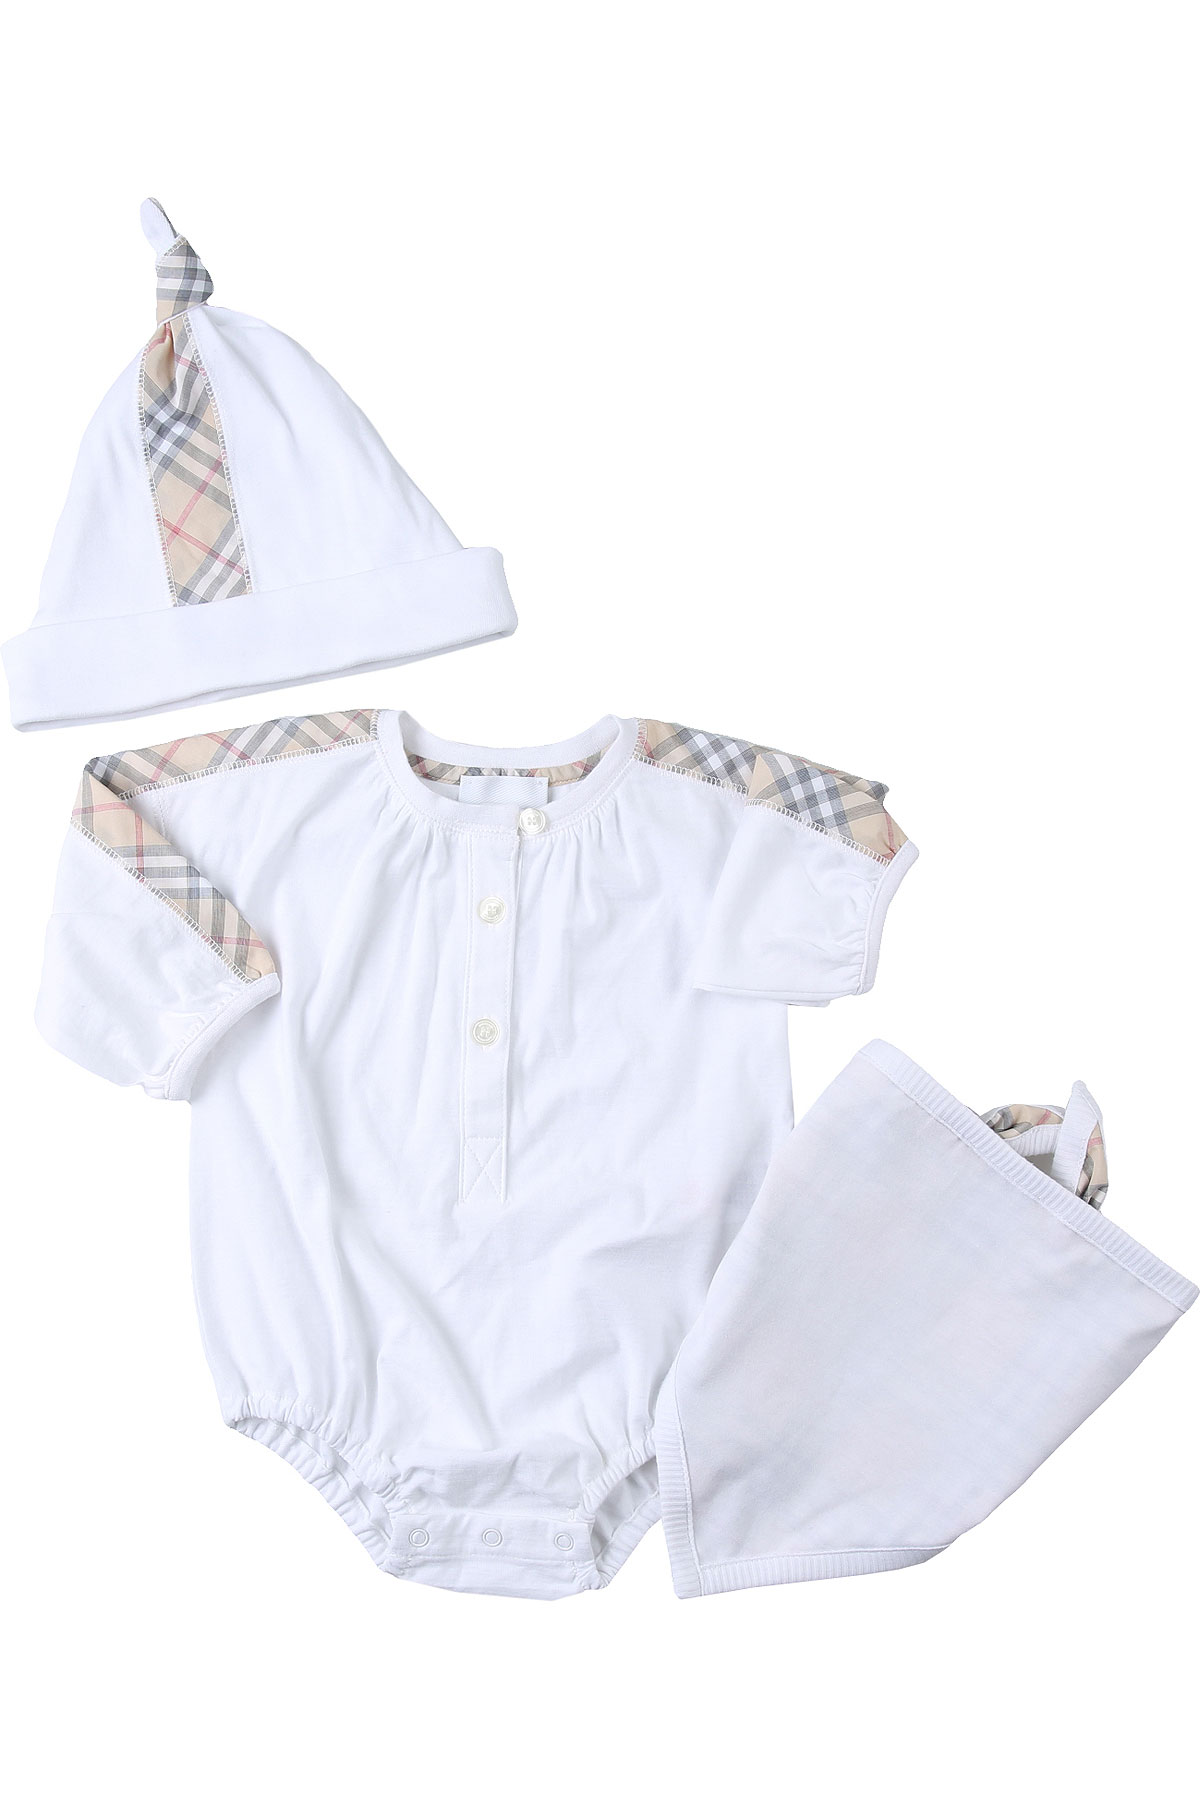 Burberry Baby Sets for Girls, White, Cotton, 2019, 1M 3M 6M